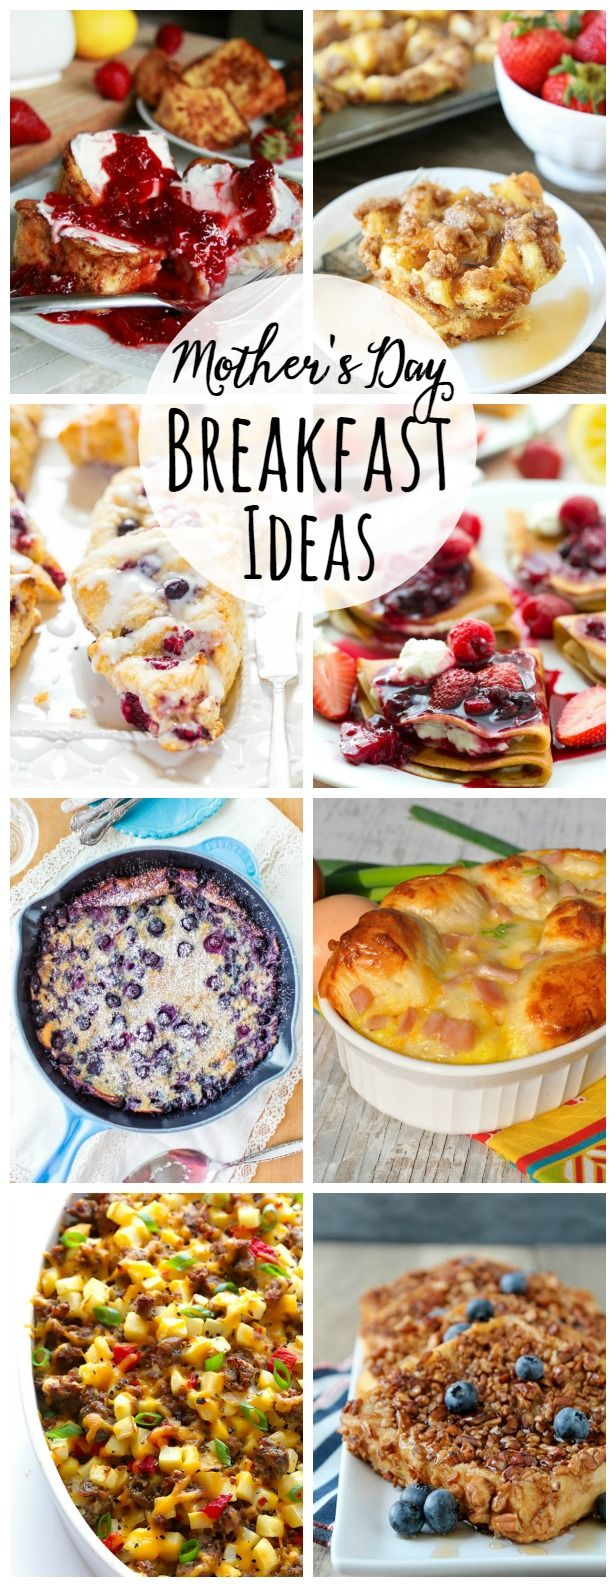 Delicious breakfast ideas perfect for Mother's Day!  // cleanandscentsible.com